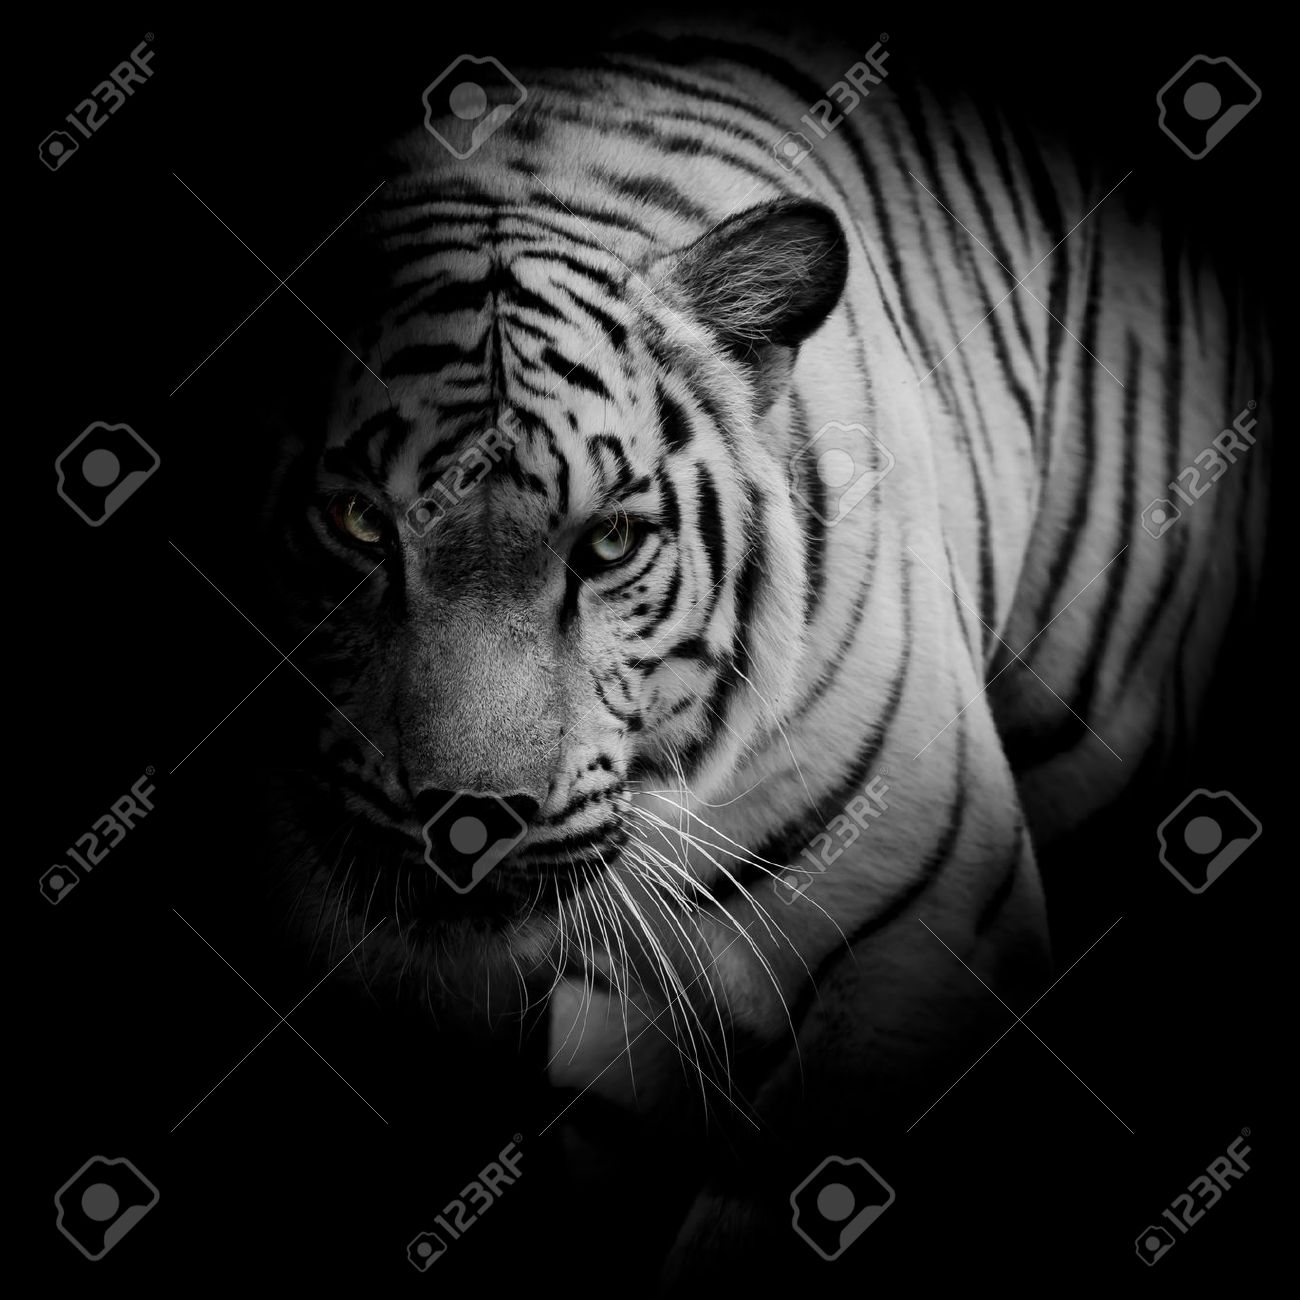 white tiger isolated on black background stock photo, picture and